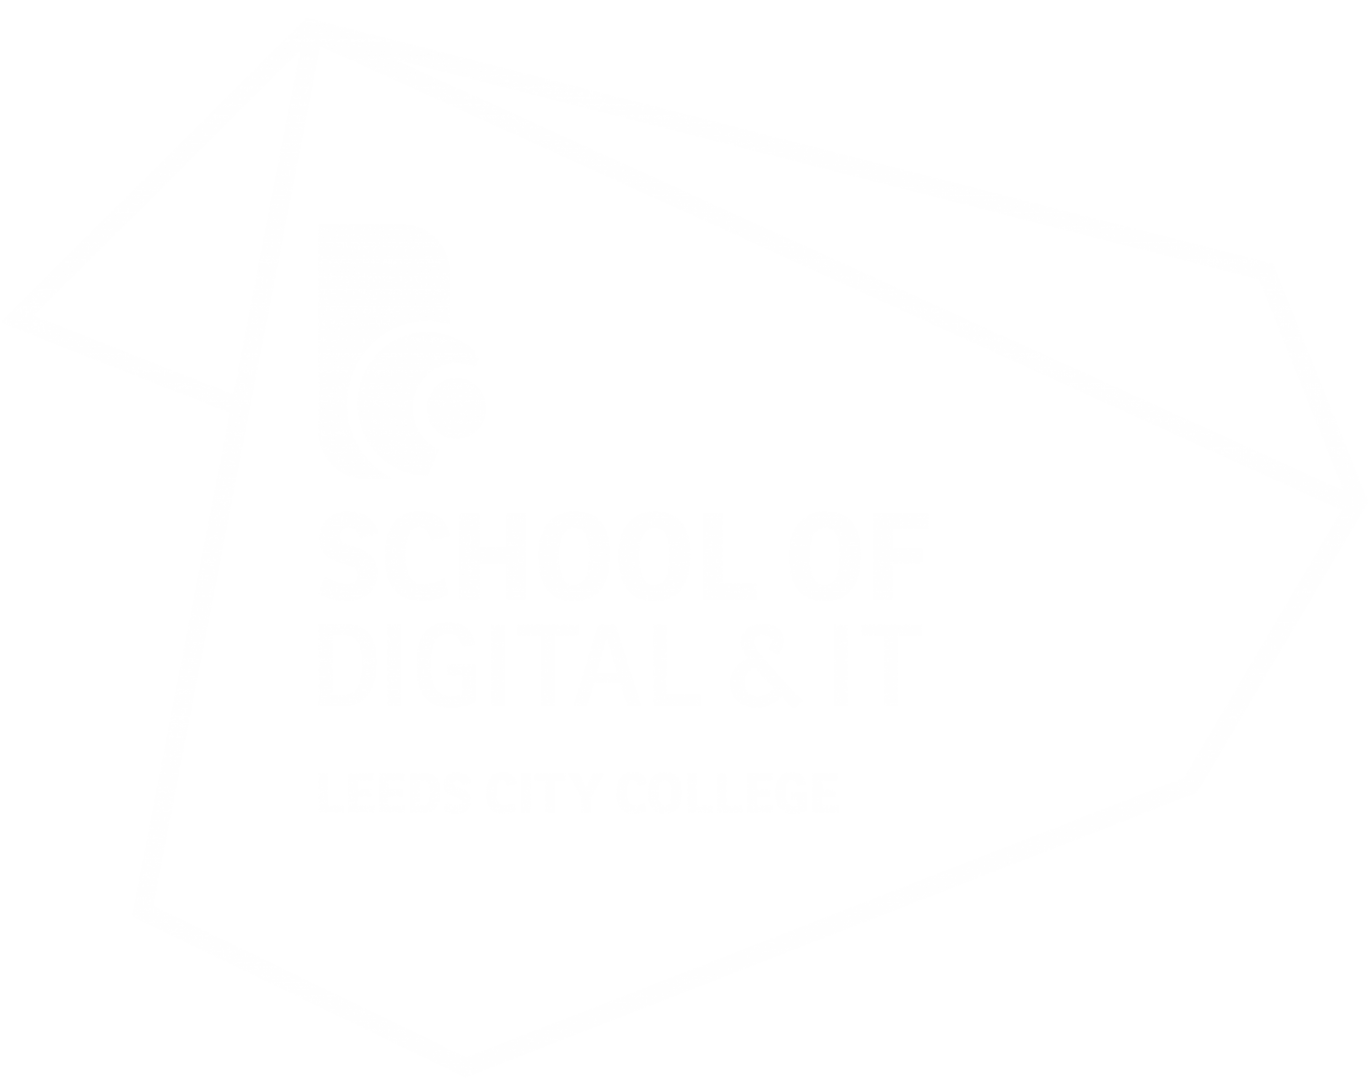 School of Digital & IT